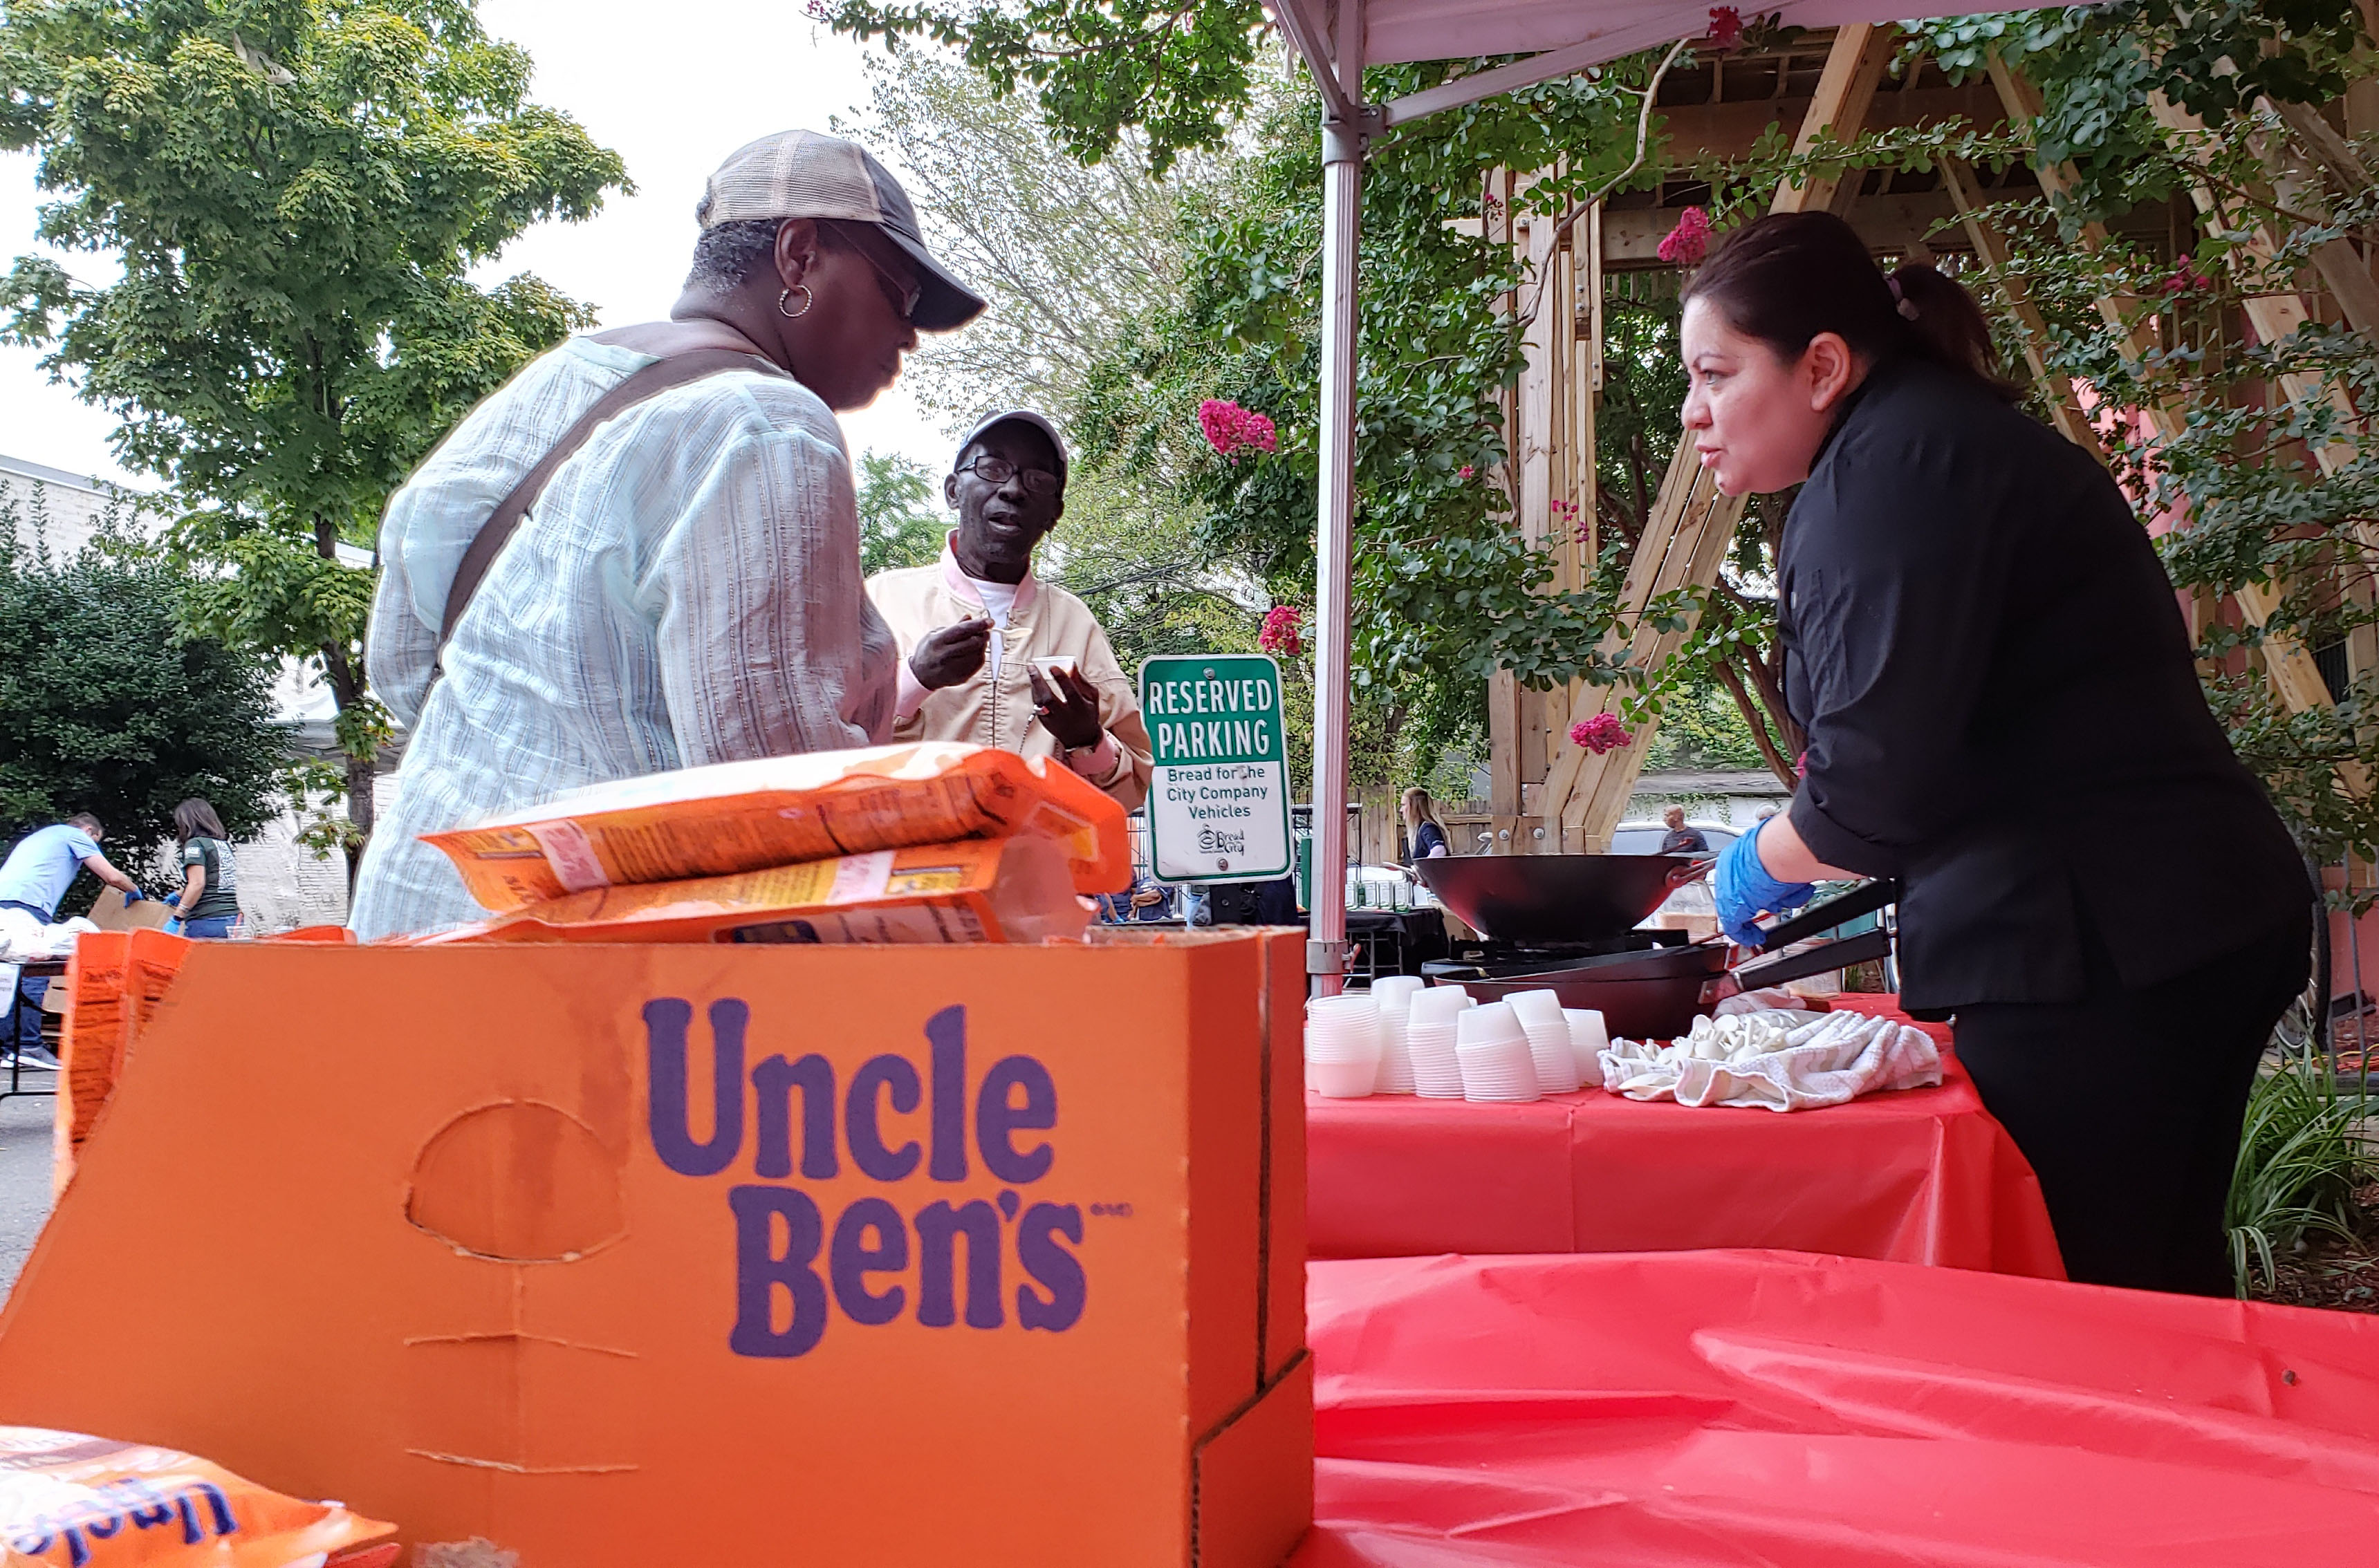 Female chef serves Uncle Ben